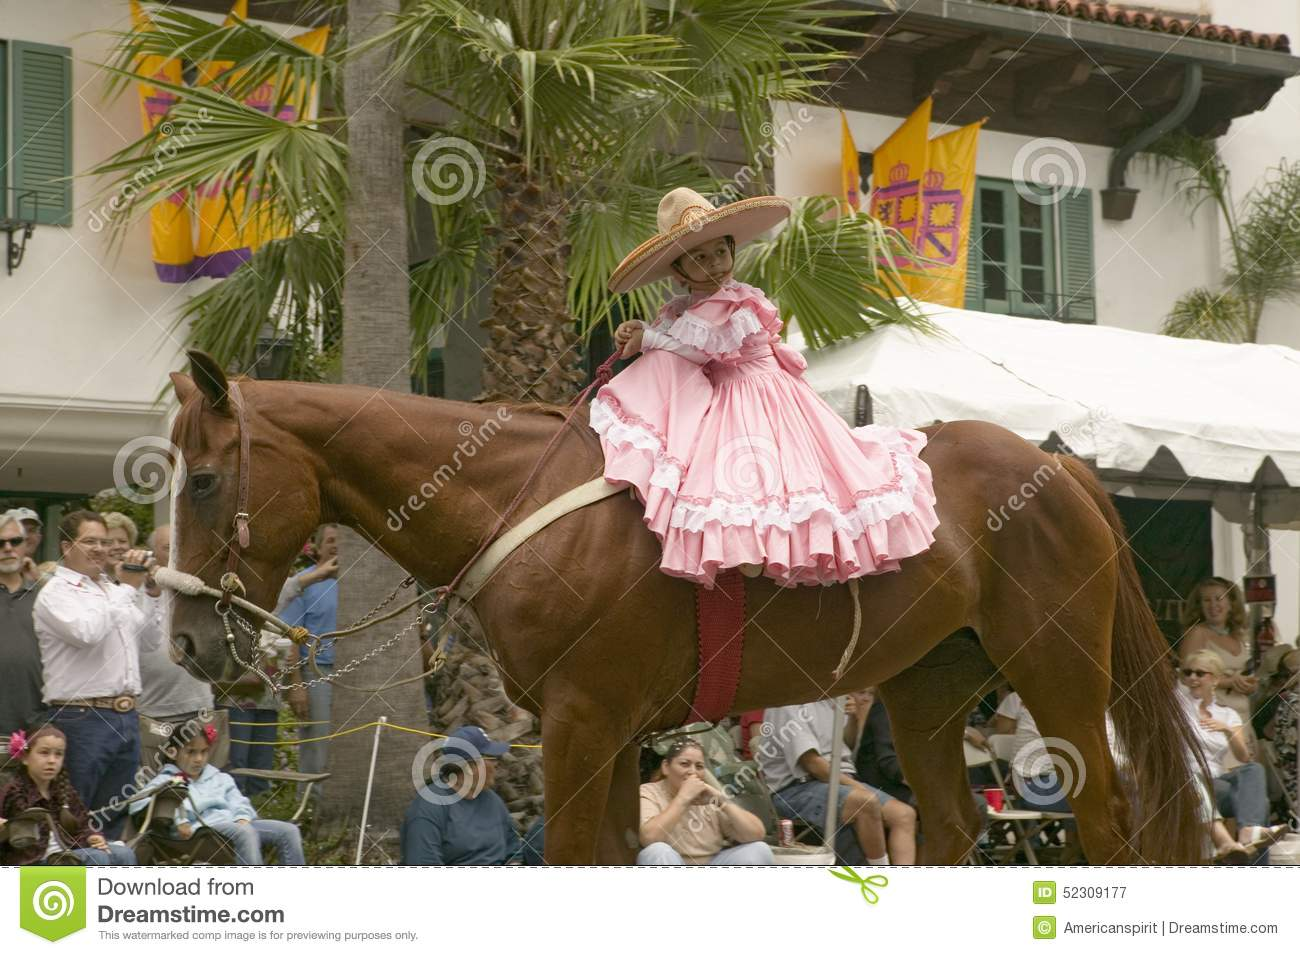 Young girl in pink dress rides horse in annual Old Spanish Days Fiesta held every August in Santa Barbara, California